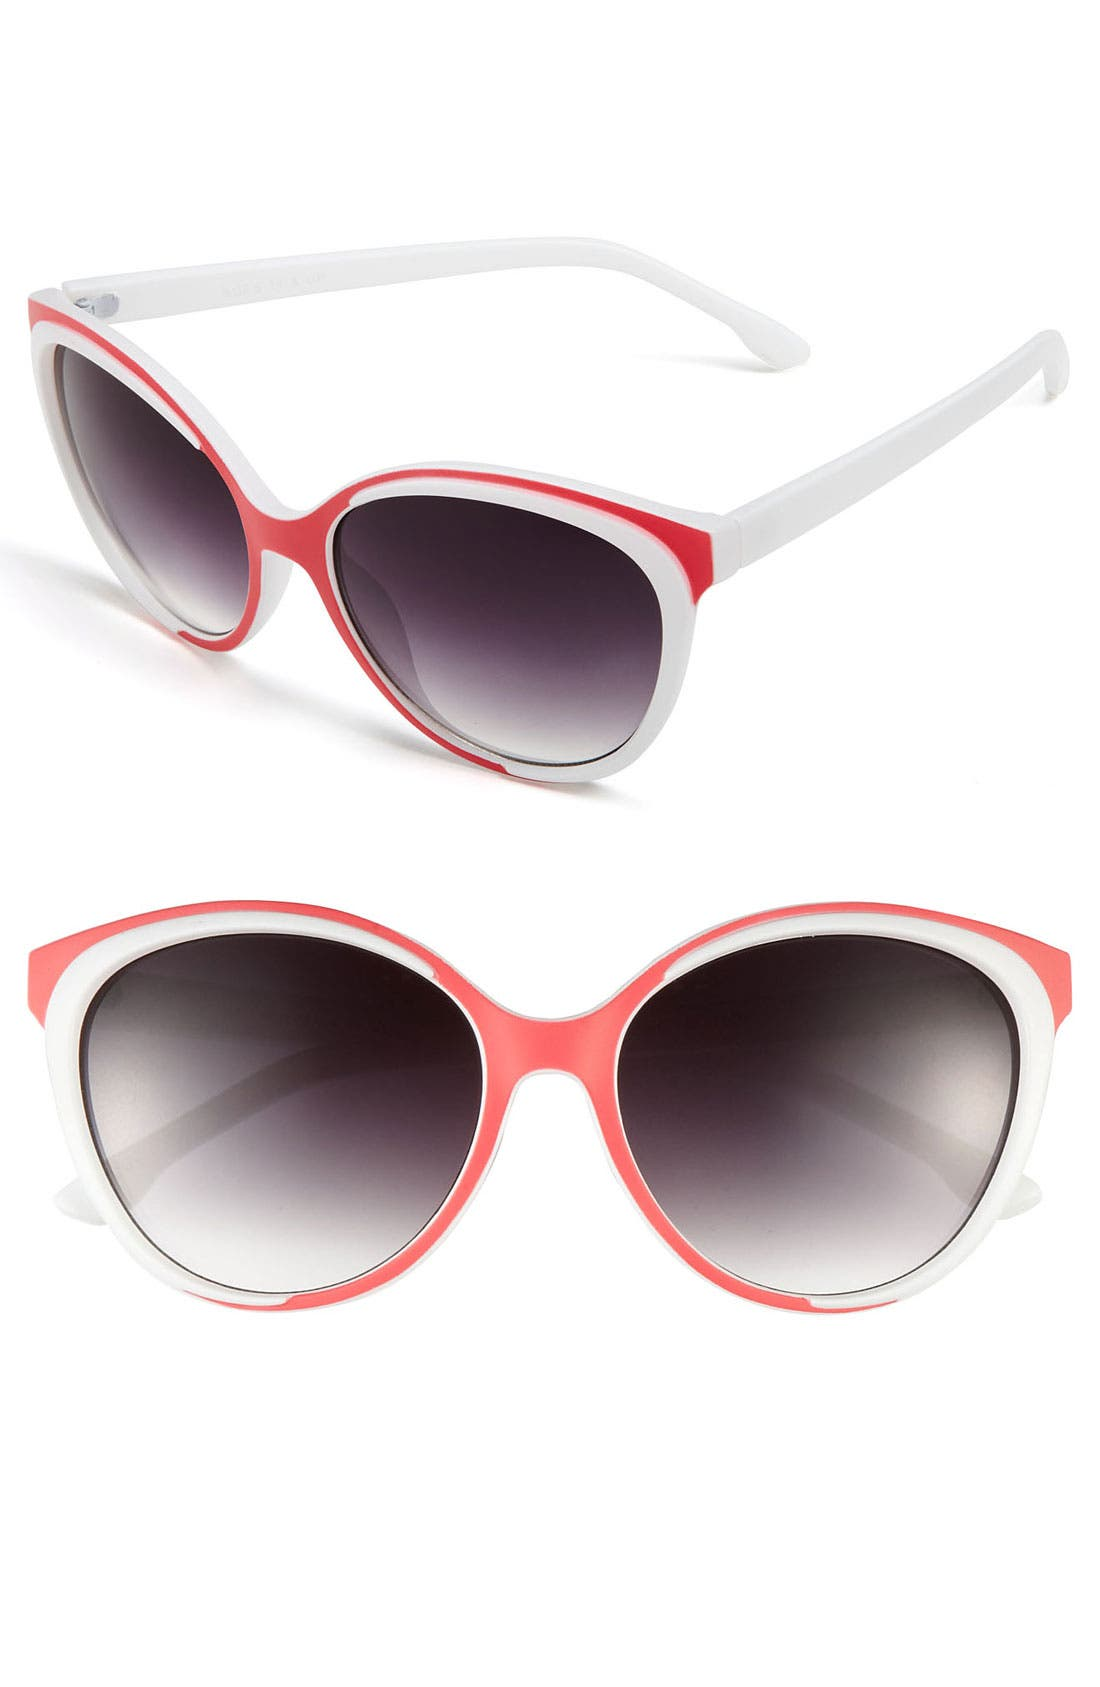 Alternate Image 1 Selected - FE NY 'Lava' Sunglasses